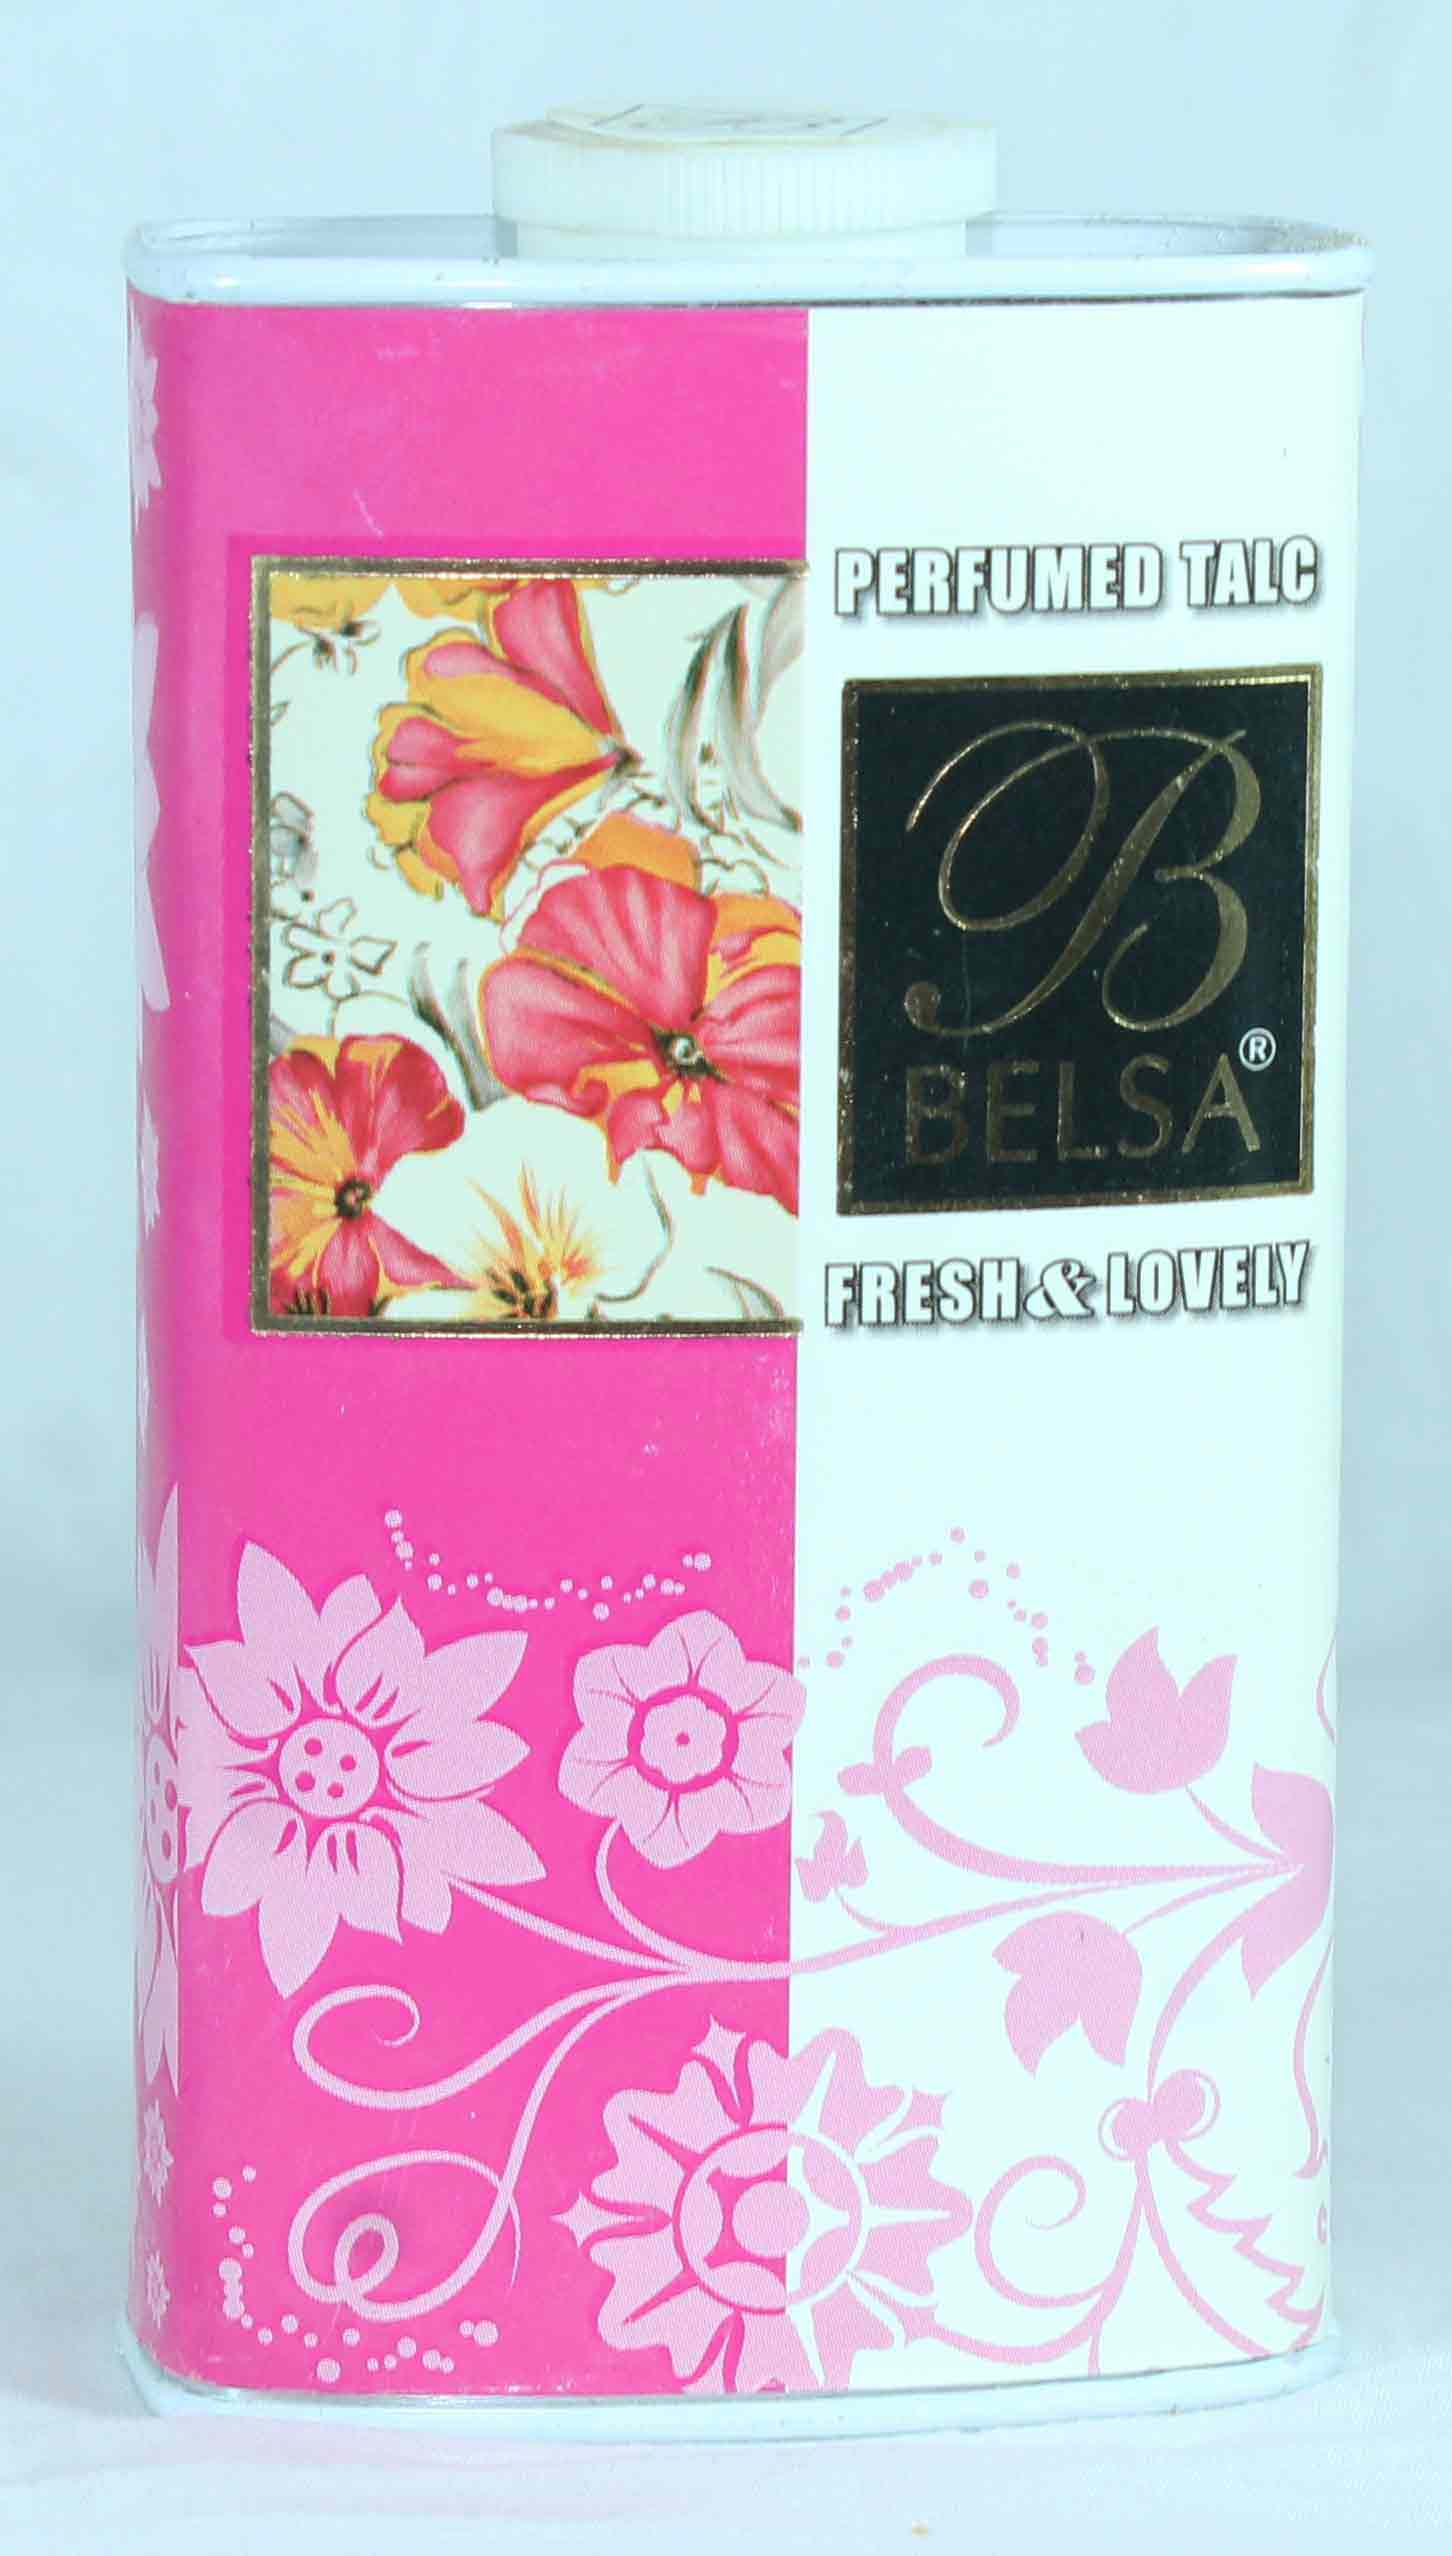 Belsa Fresh & Lovely Perfumed Talcum Powder Small